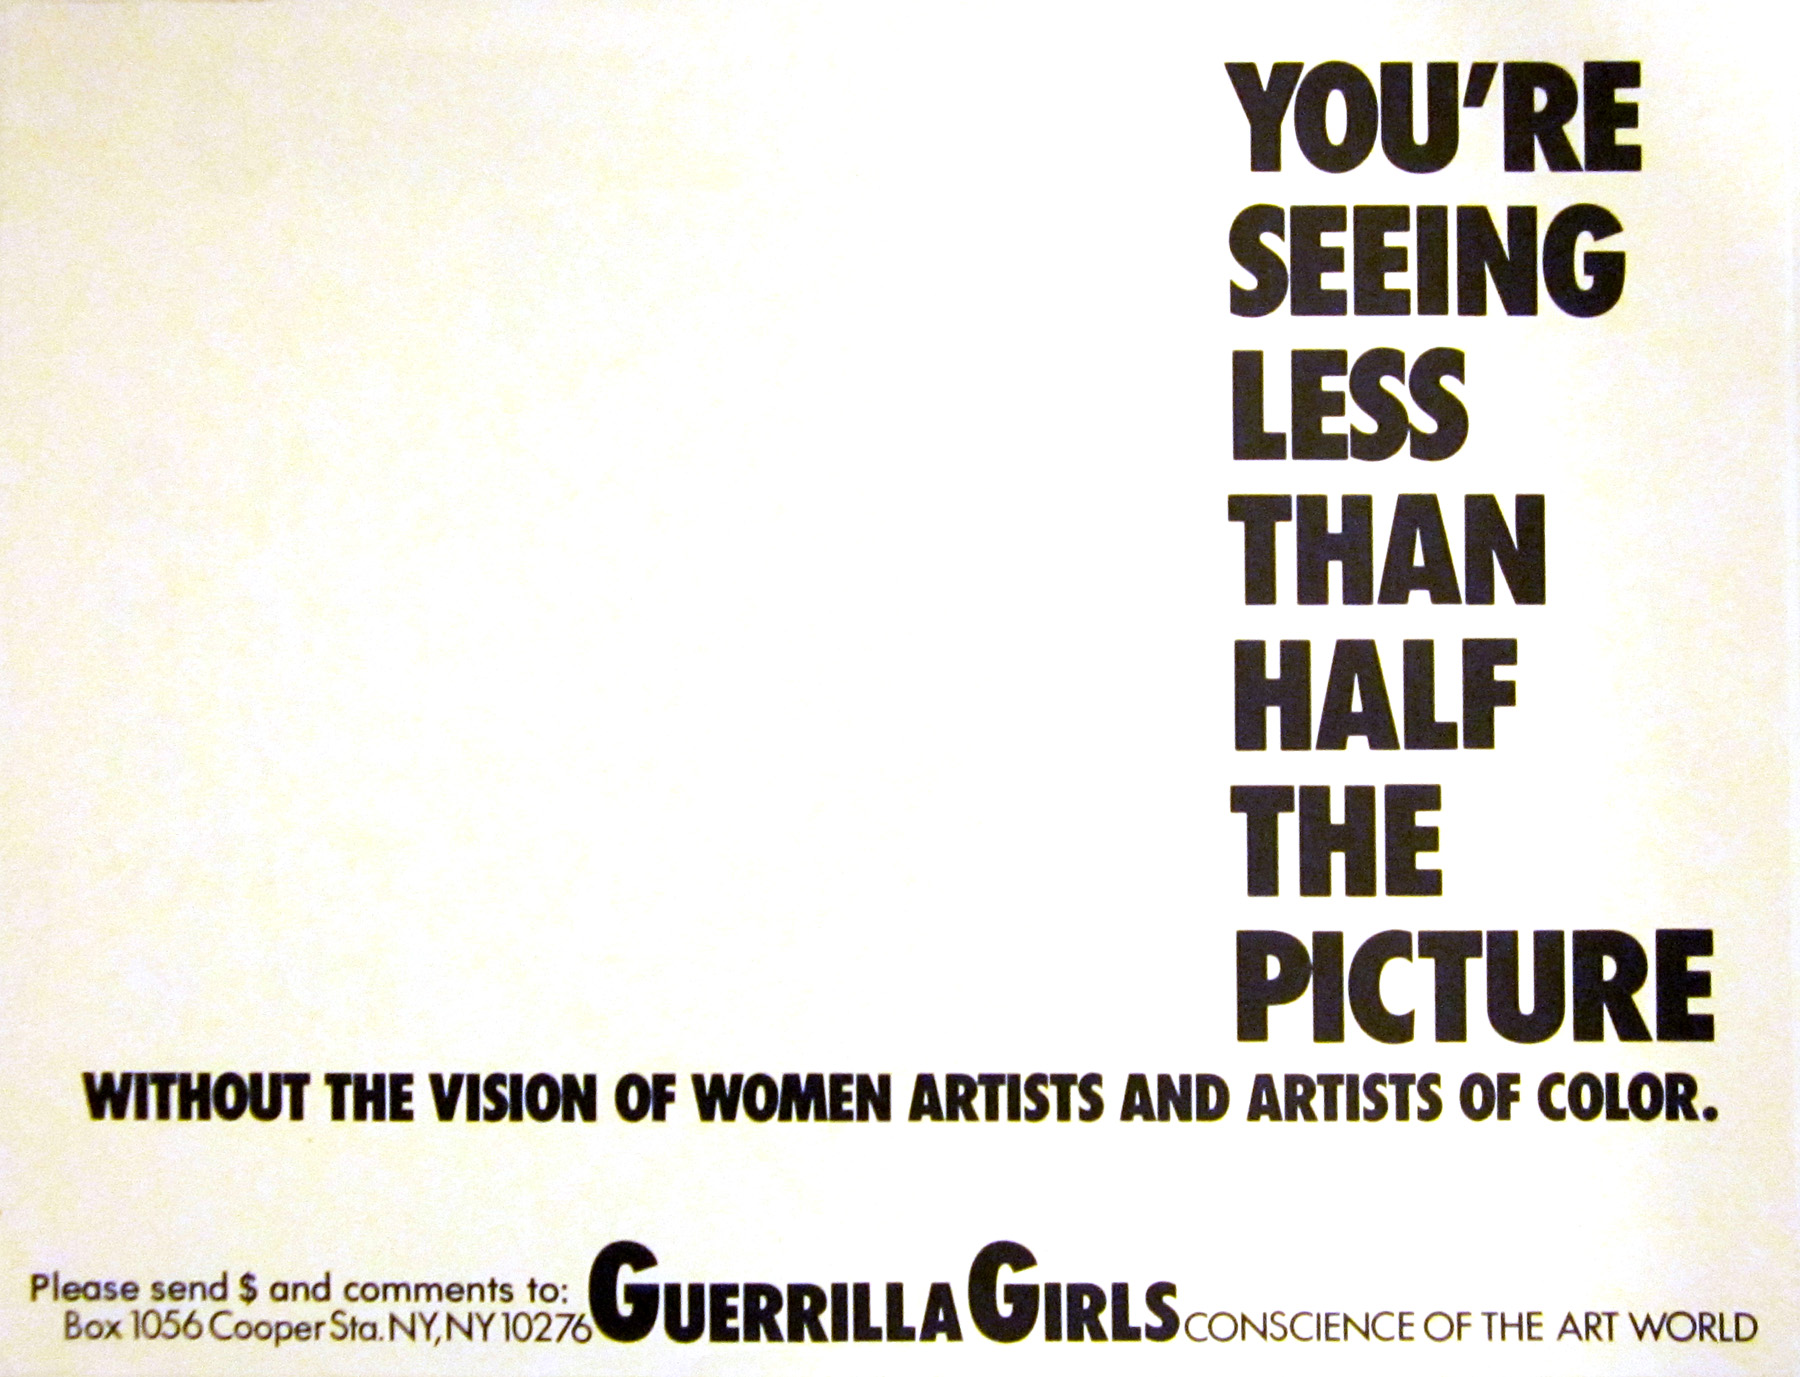 Guerrilla Girls (American, established 1985), You're seeing only 1/2 the picture without the vision..., from the portfolio Guerrilla Girls Talk Back: The First Five Years, 1984–89. Offset lithograph. Milwaukee Art Museum, Purchase, with funds from Peggy Daum Judge Bequest M1993.302.26. Photo credit: Tina Schinabeck. © Guerrilla Girls.